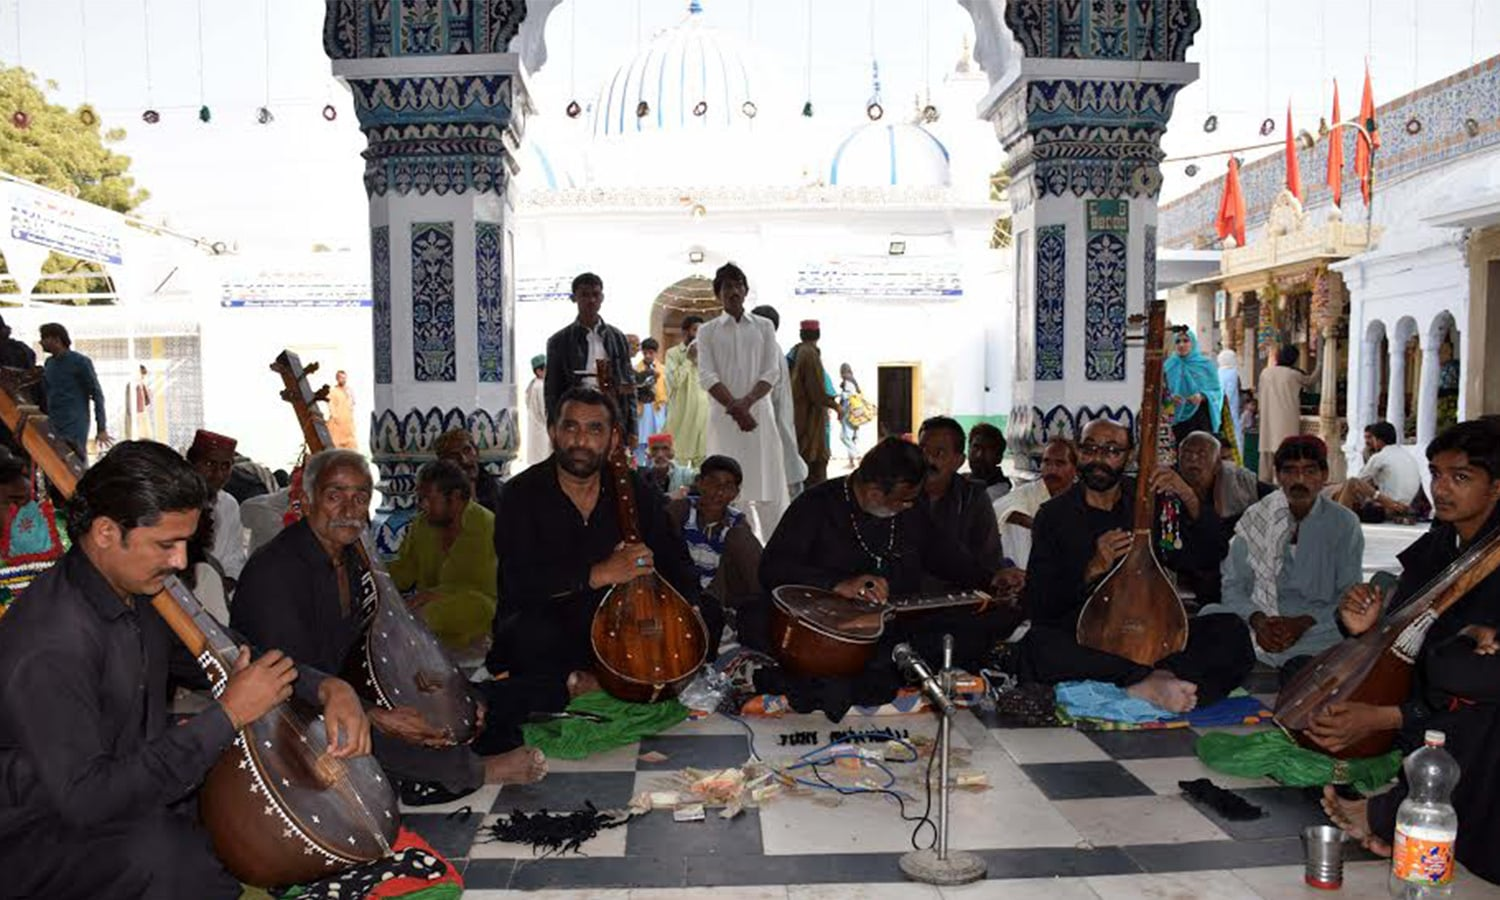 Saint's faqirs who are dressed in black sit on semi circle formation and use the long instrument called 'dhambora' to recite Bhitai's poetry which is called 'wai'.